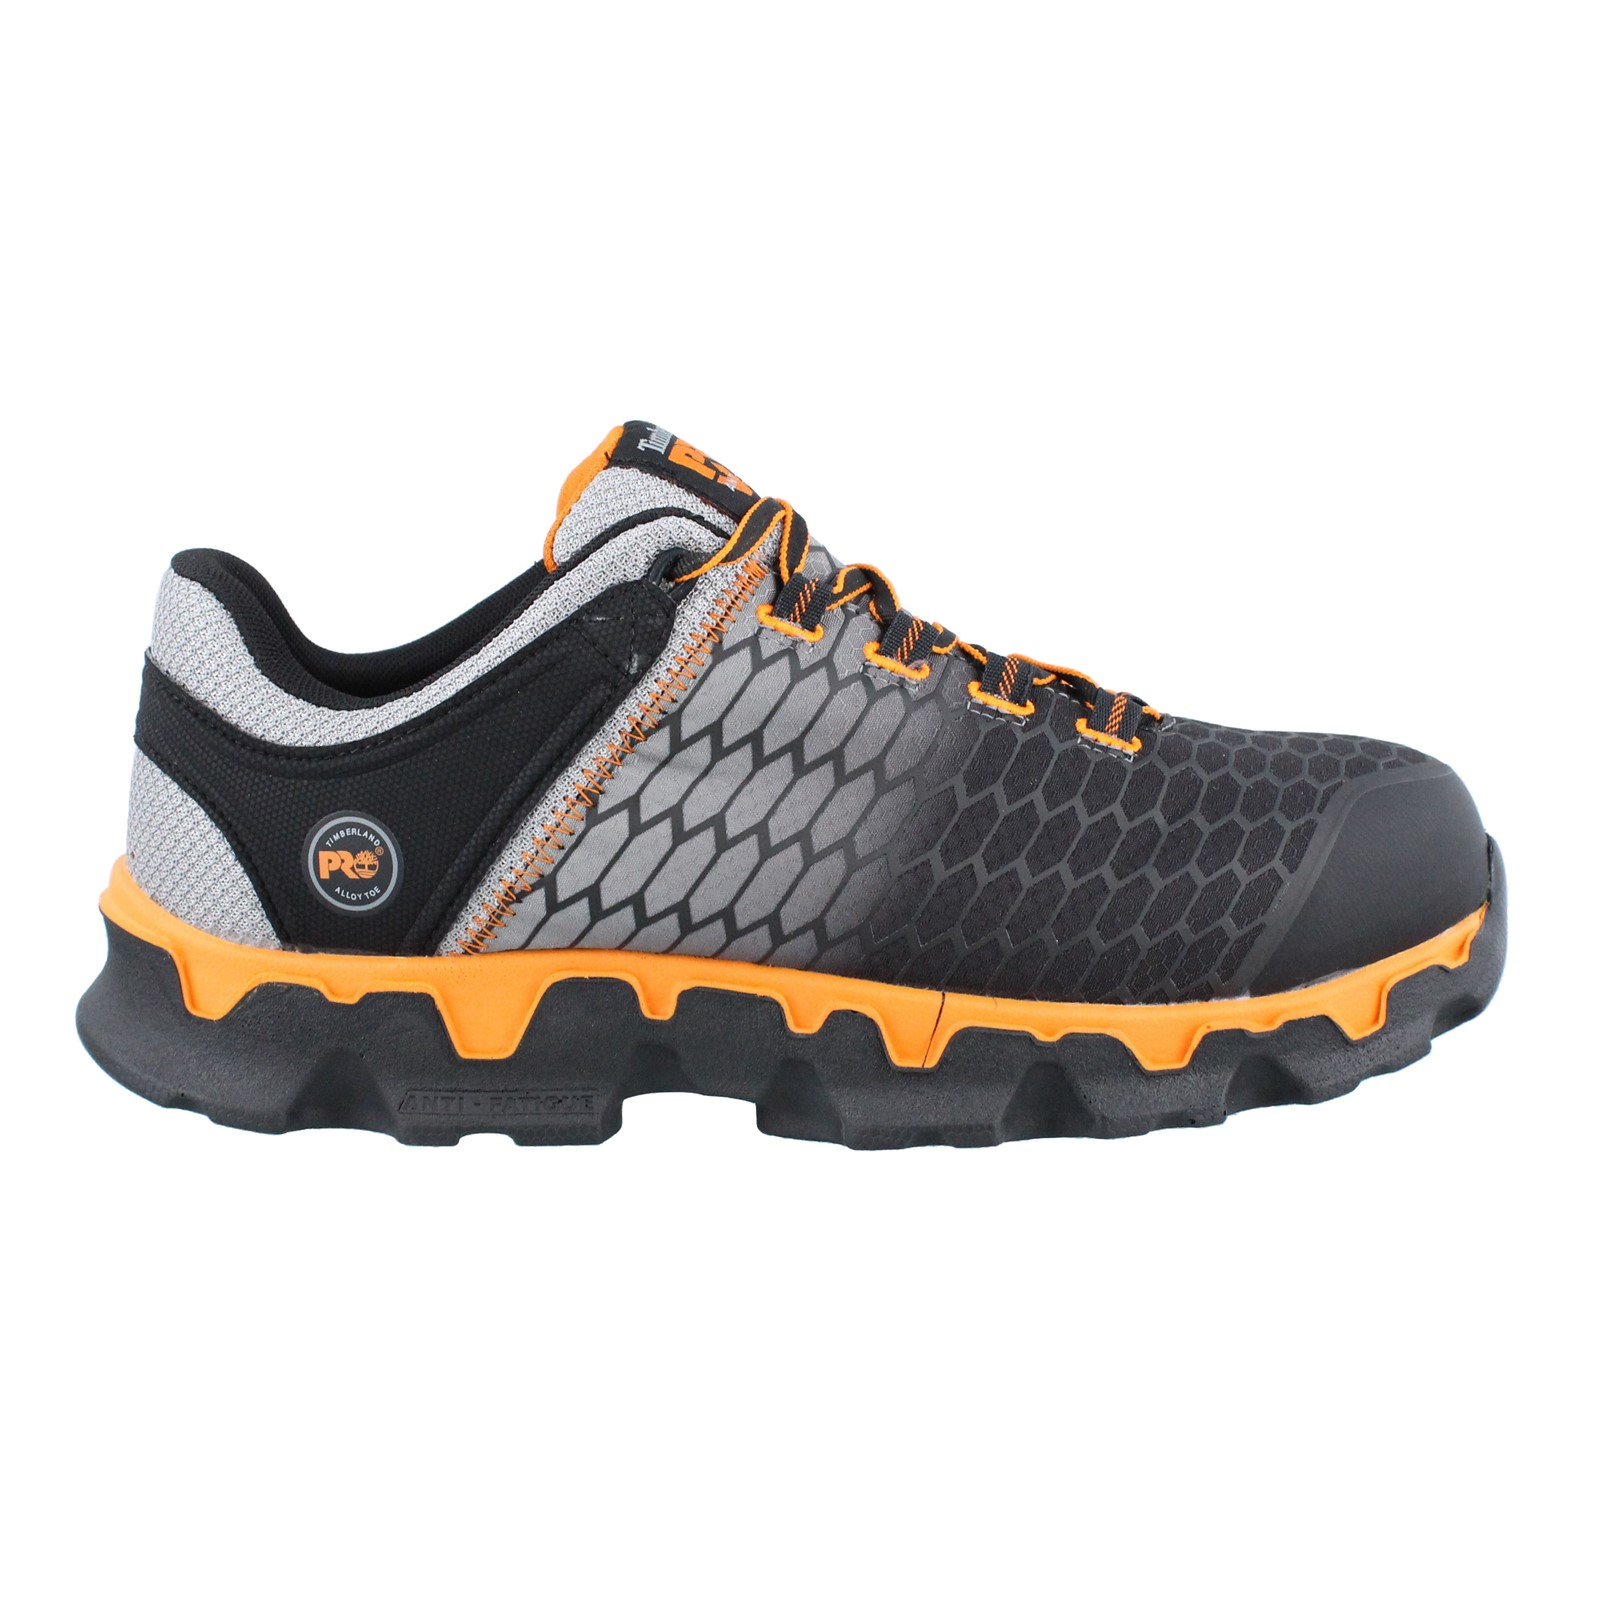 Men's Timberland Pro, Powertrain Sport Alloy Toe SD+